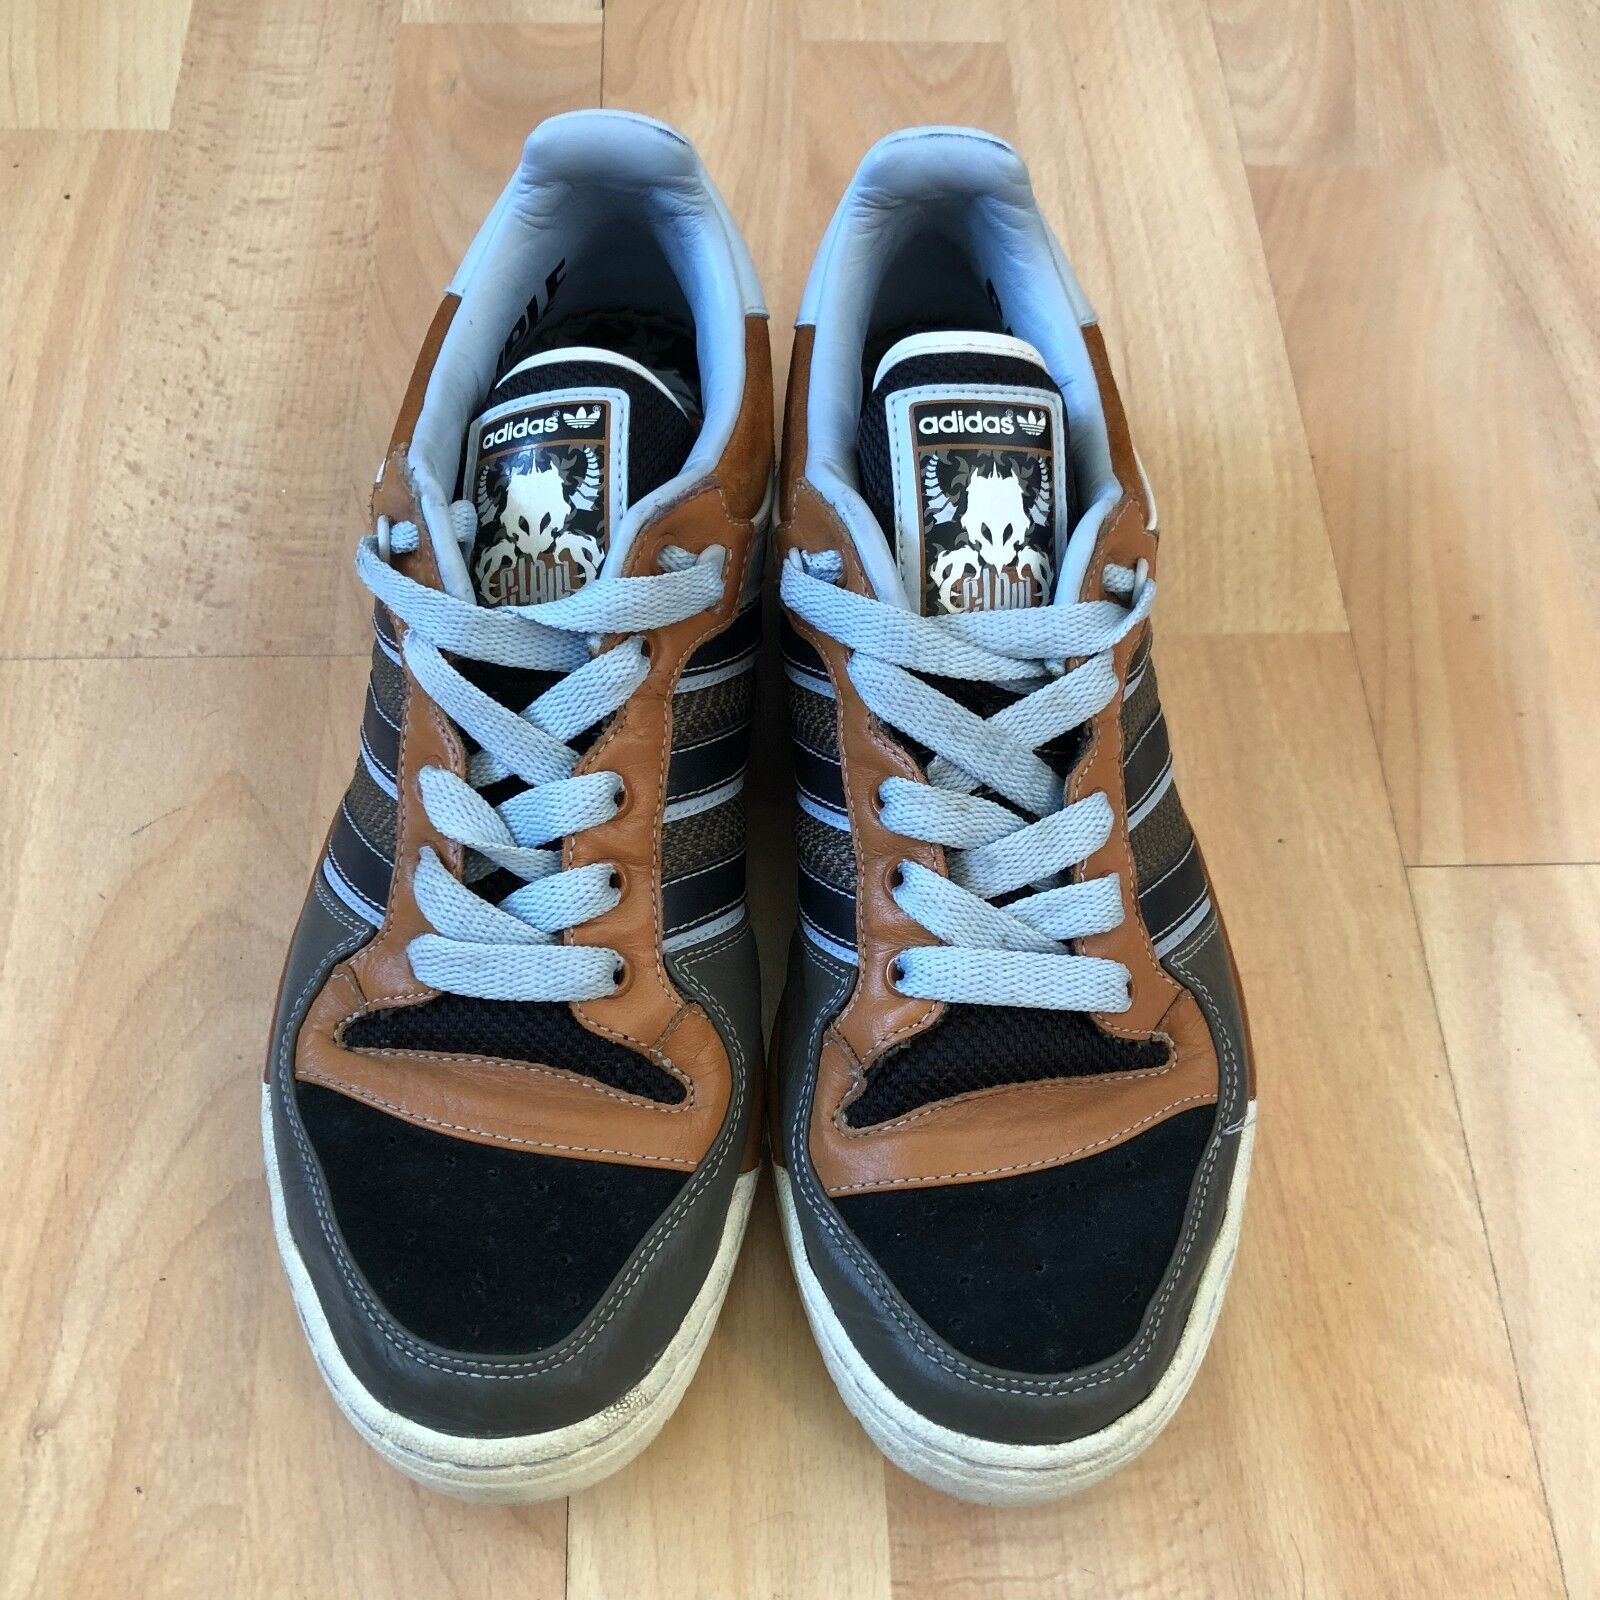 9b7a818eaf5c2 Adidas - 600 C-LAW RARE ZX SAMPLE nnvwif2930-Men's Trainers - www ...